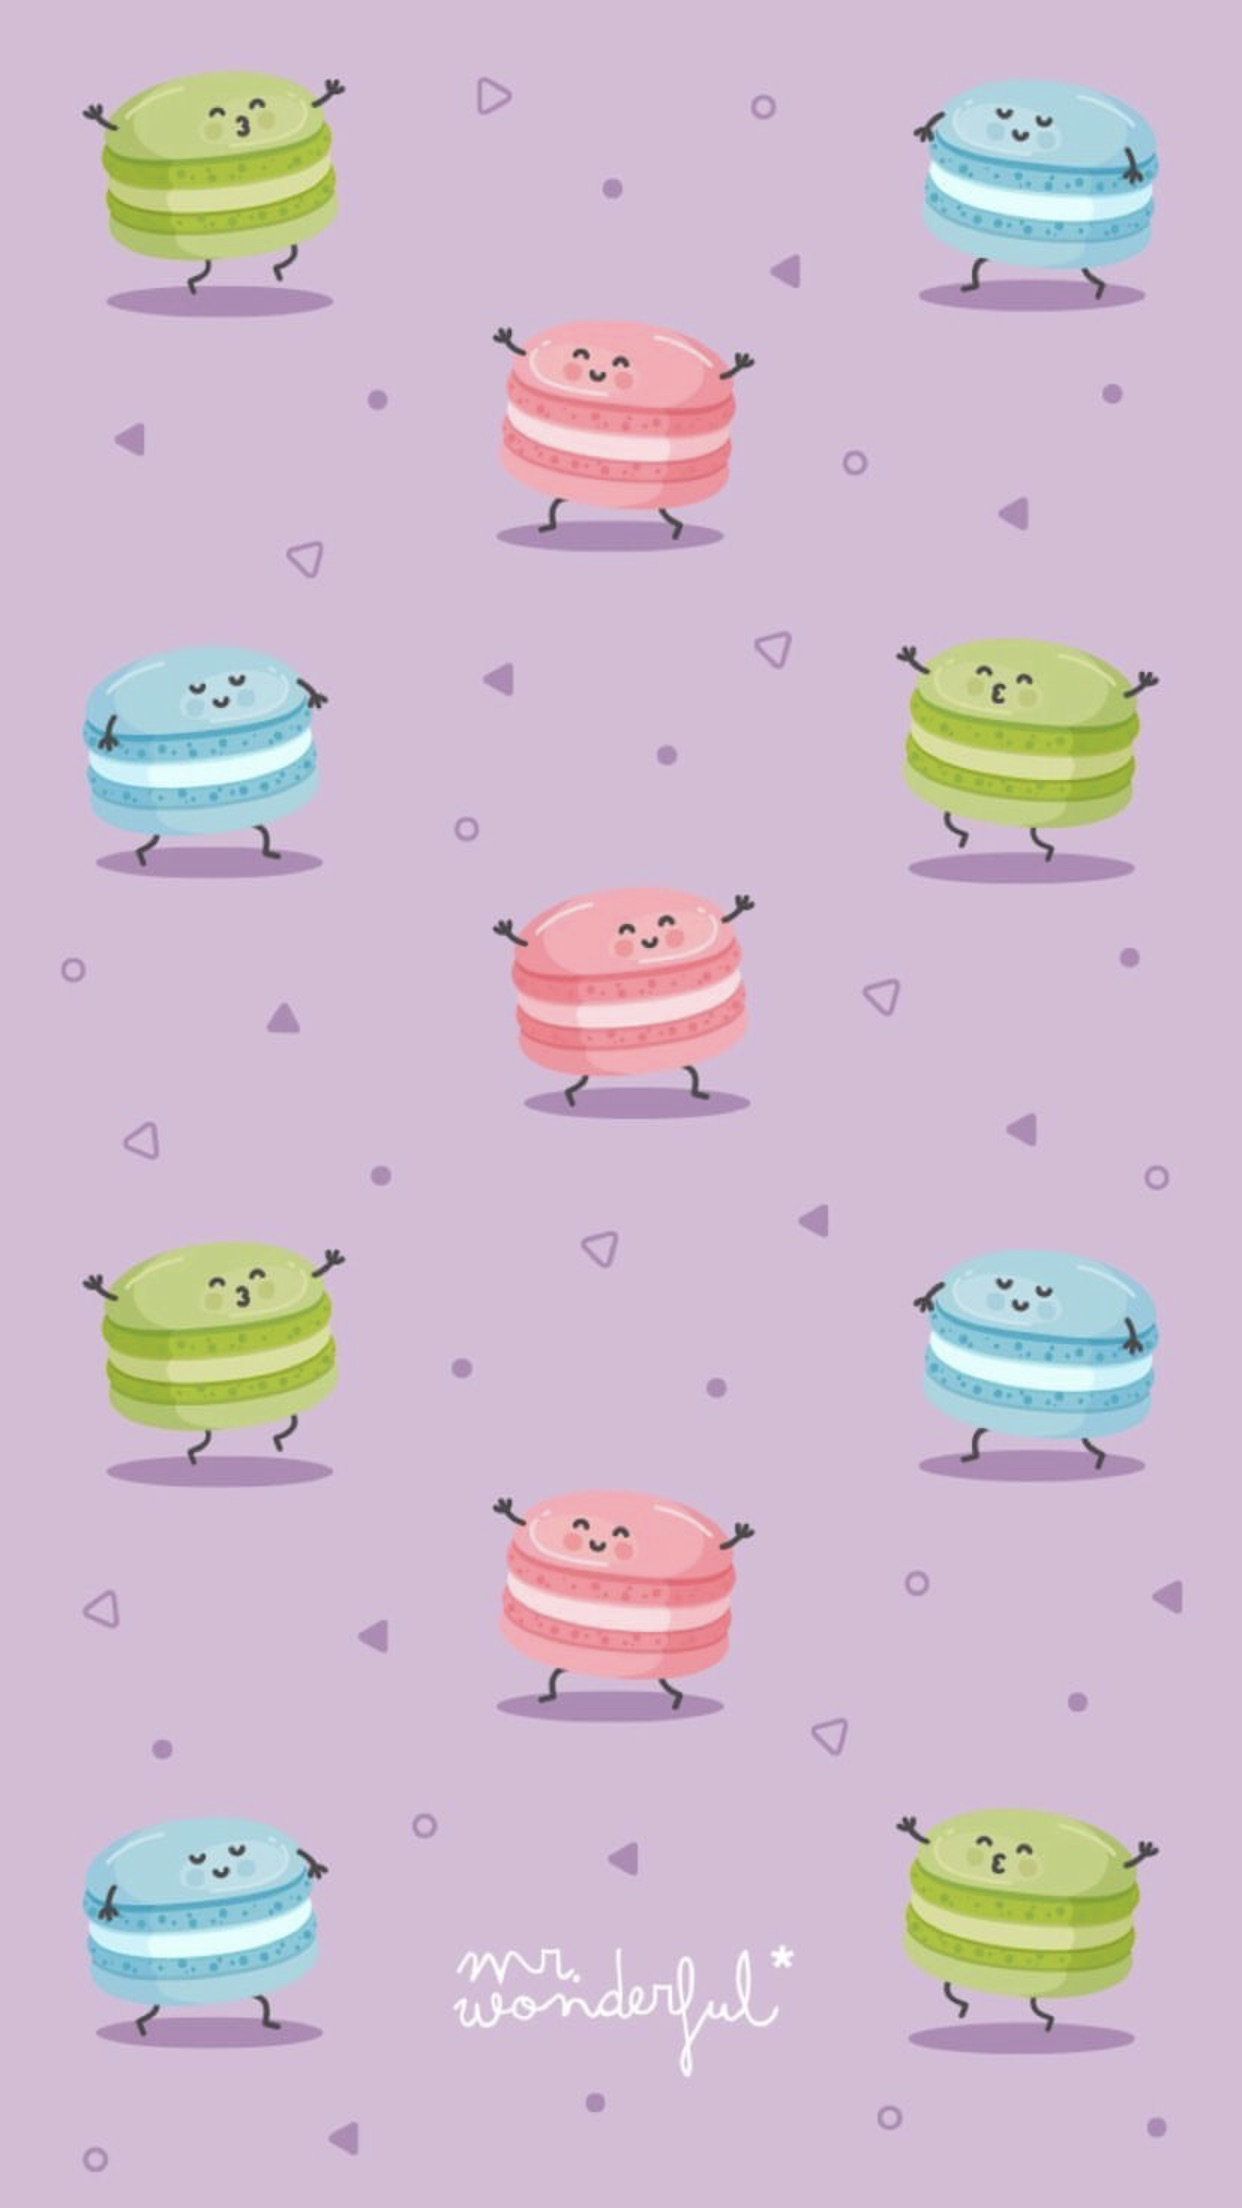 fondos de pantalla, fondo de pantalla, fondo de pantalla divertido, fondo de pantalla femenino, girly backgrounds, cool background, colorful backfround, fondo de pantalla patron, pattern, cupcake background, fondo de pantalla de cupcakes.